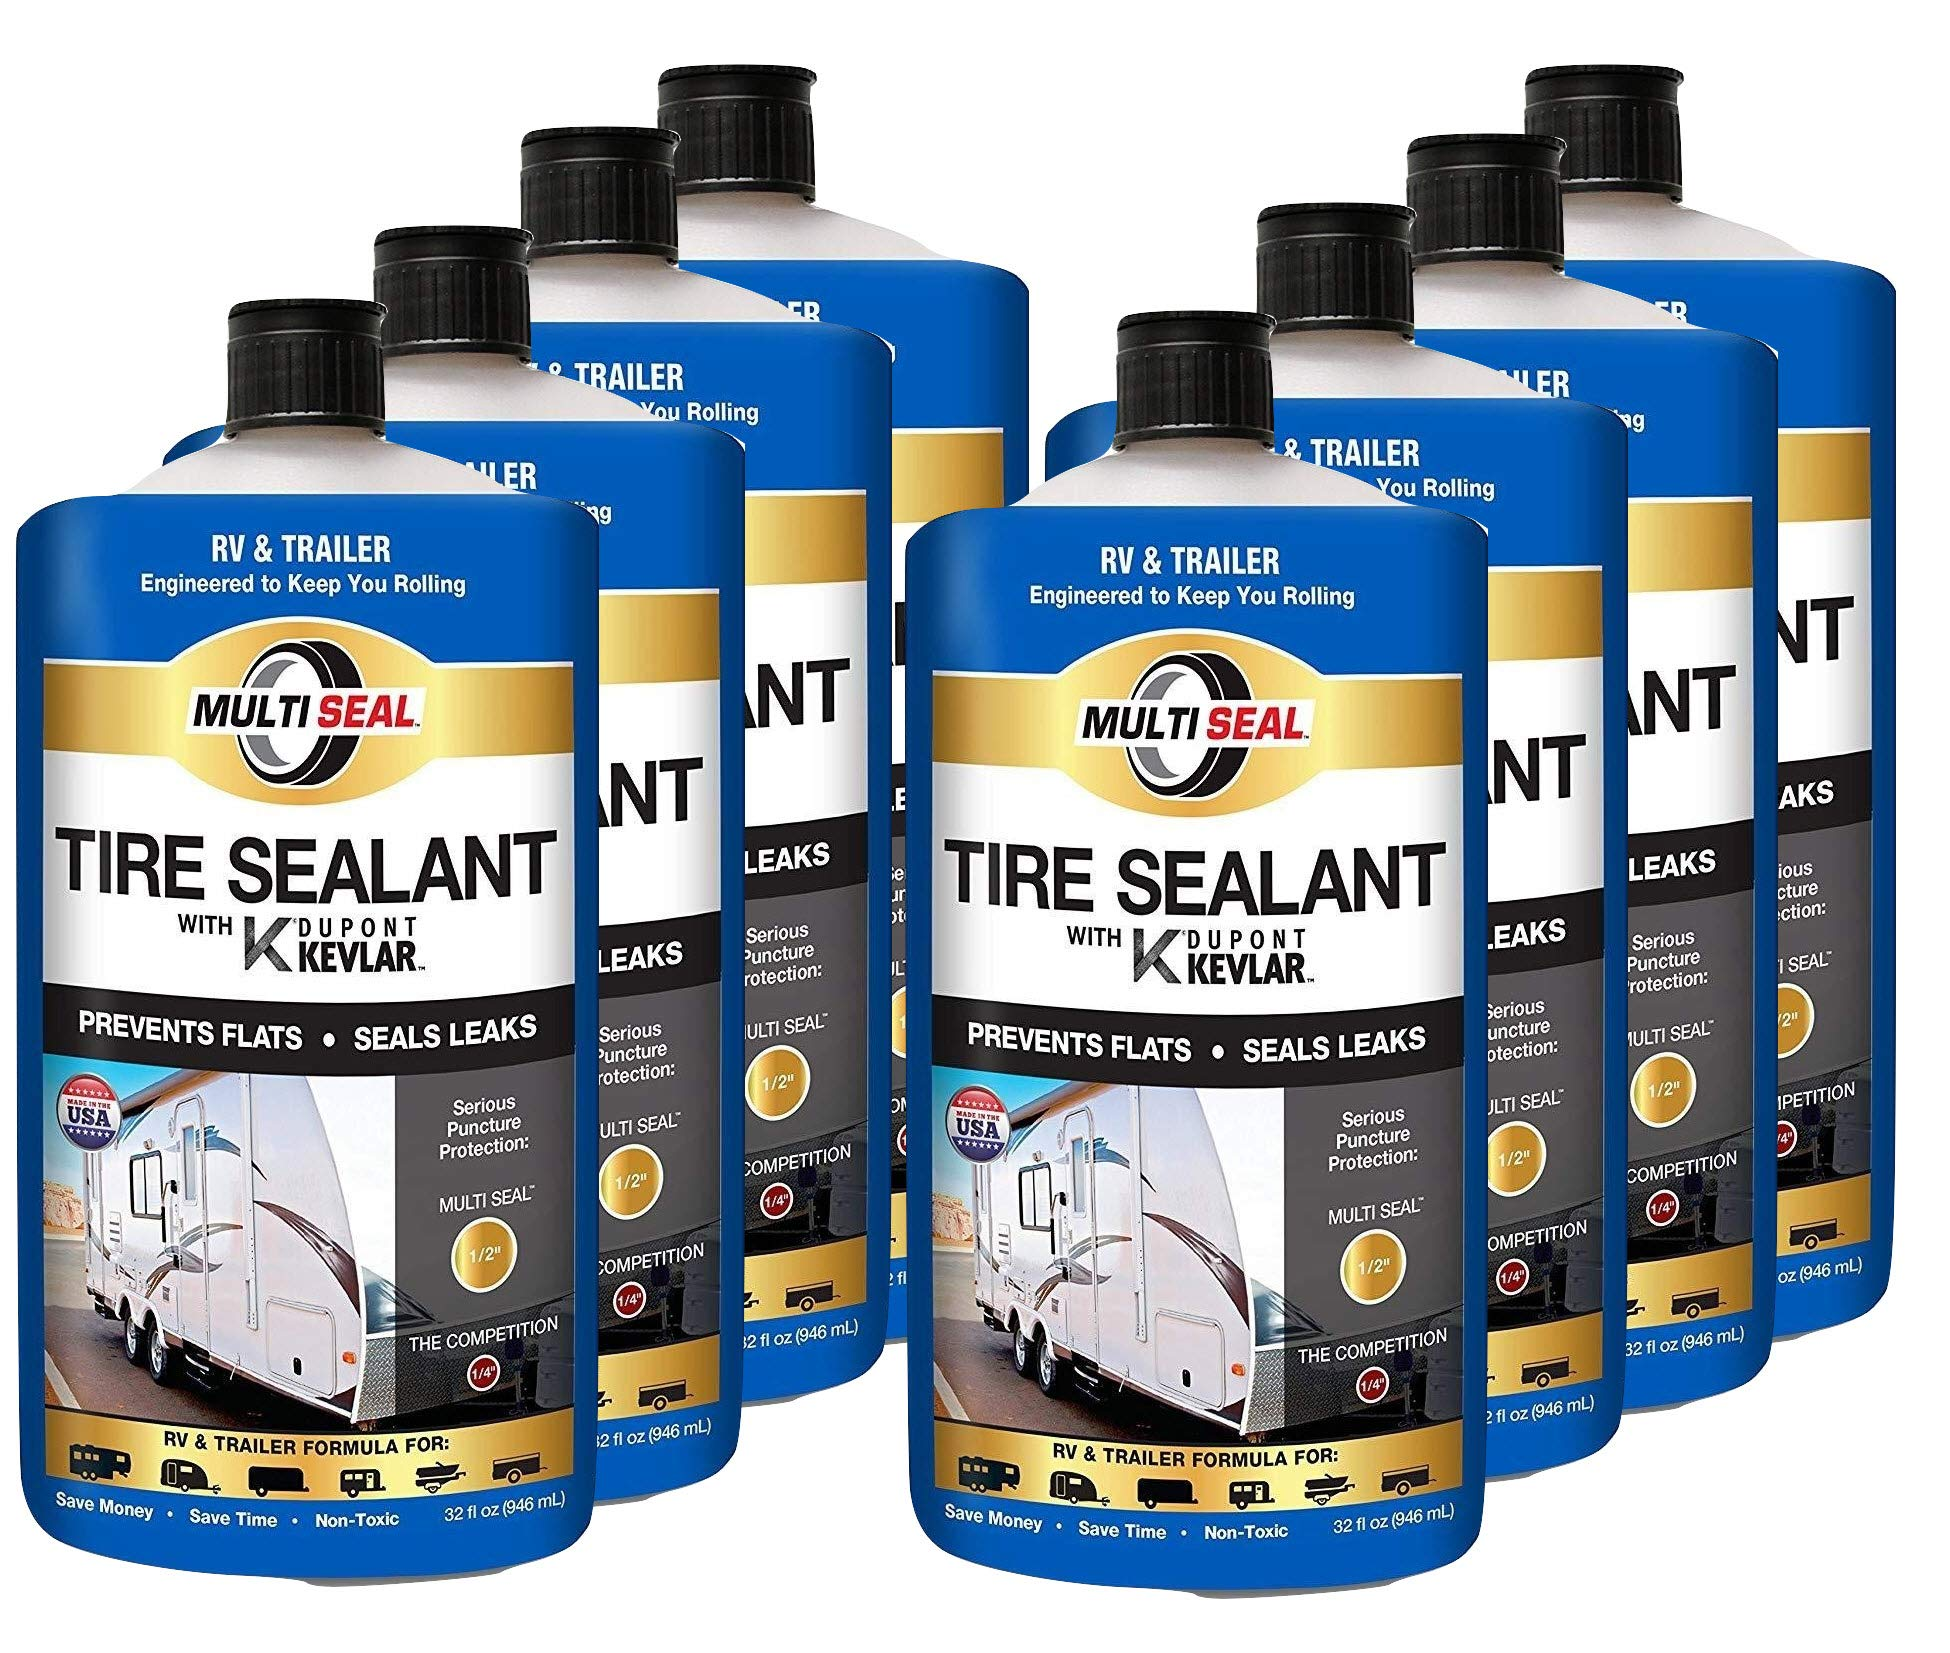 MULTI SEAL 20148 Tire Sealant with Kevlar (RV & Trailer Formula), Great for Travel Trailers, Boat Trailers, Horse Trailers, Toy Haulers, Cargo Trailers, Utility Trailers and more, 8-Pack (256 oz.)